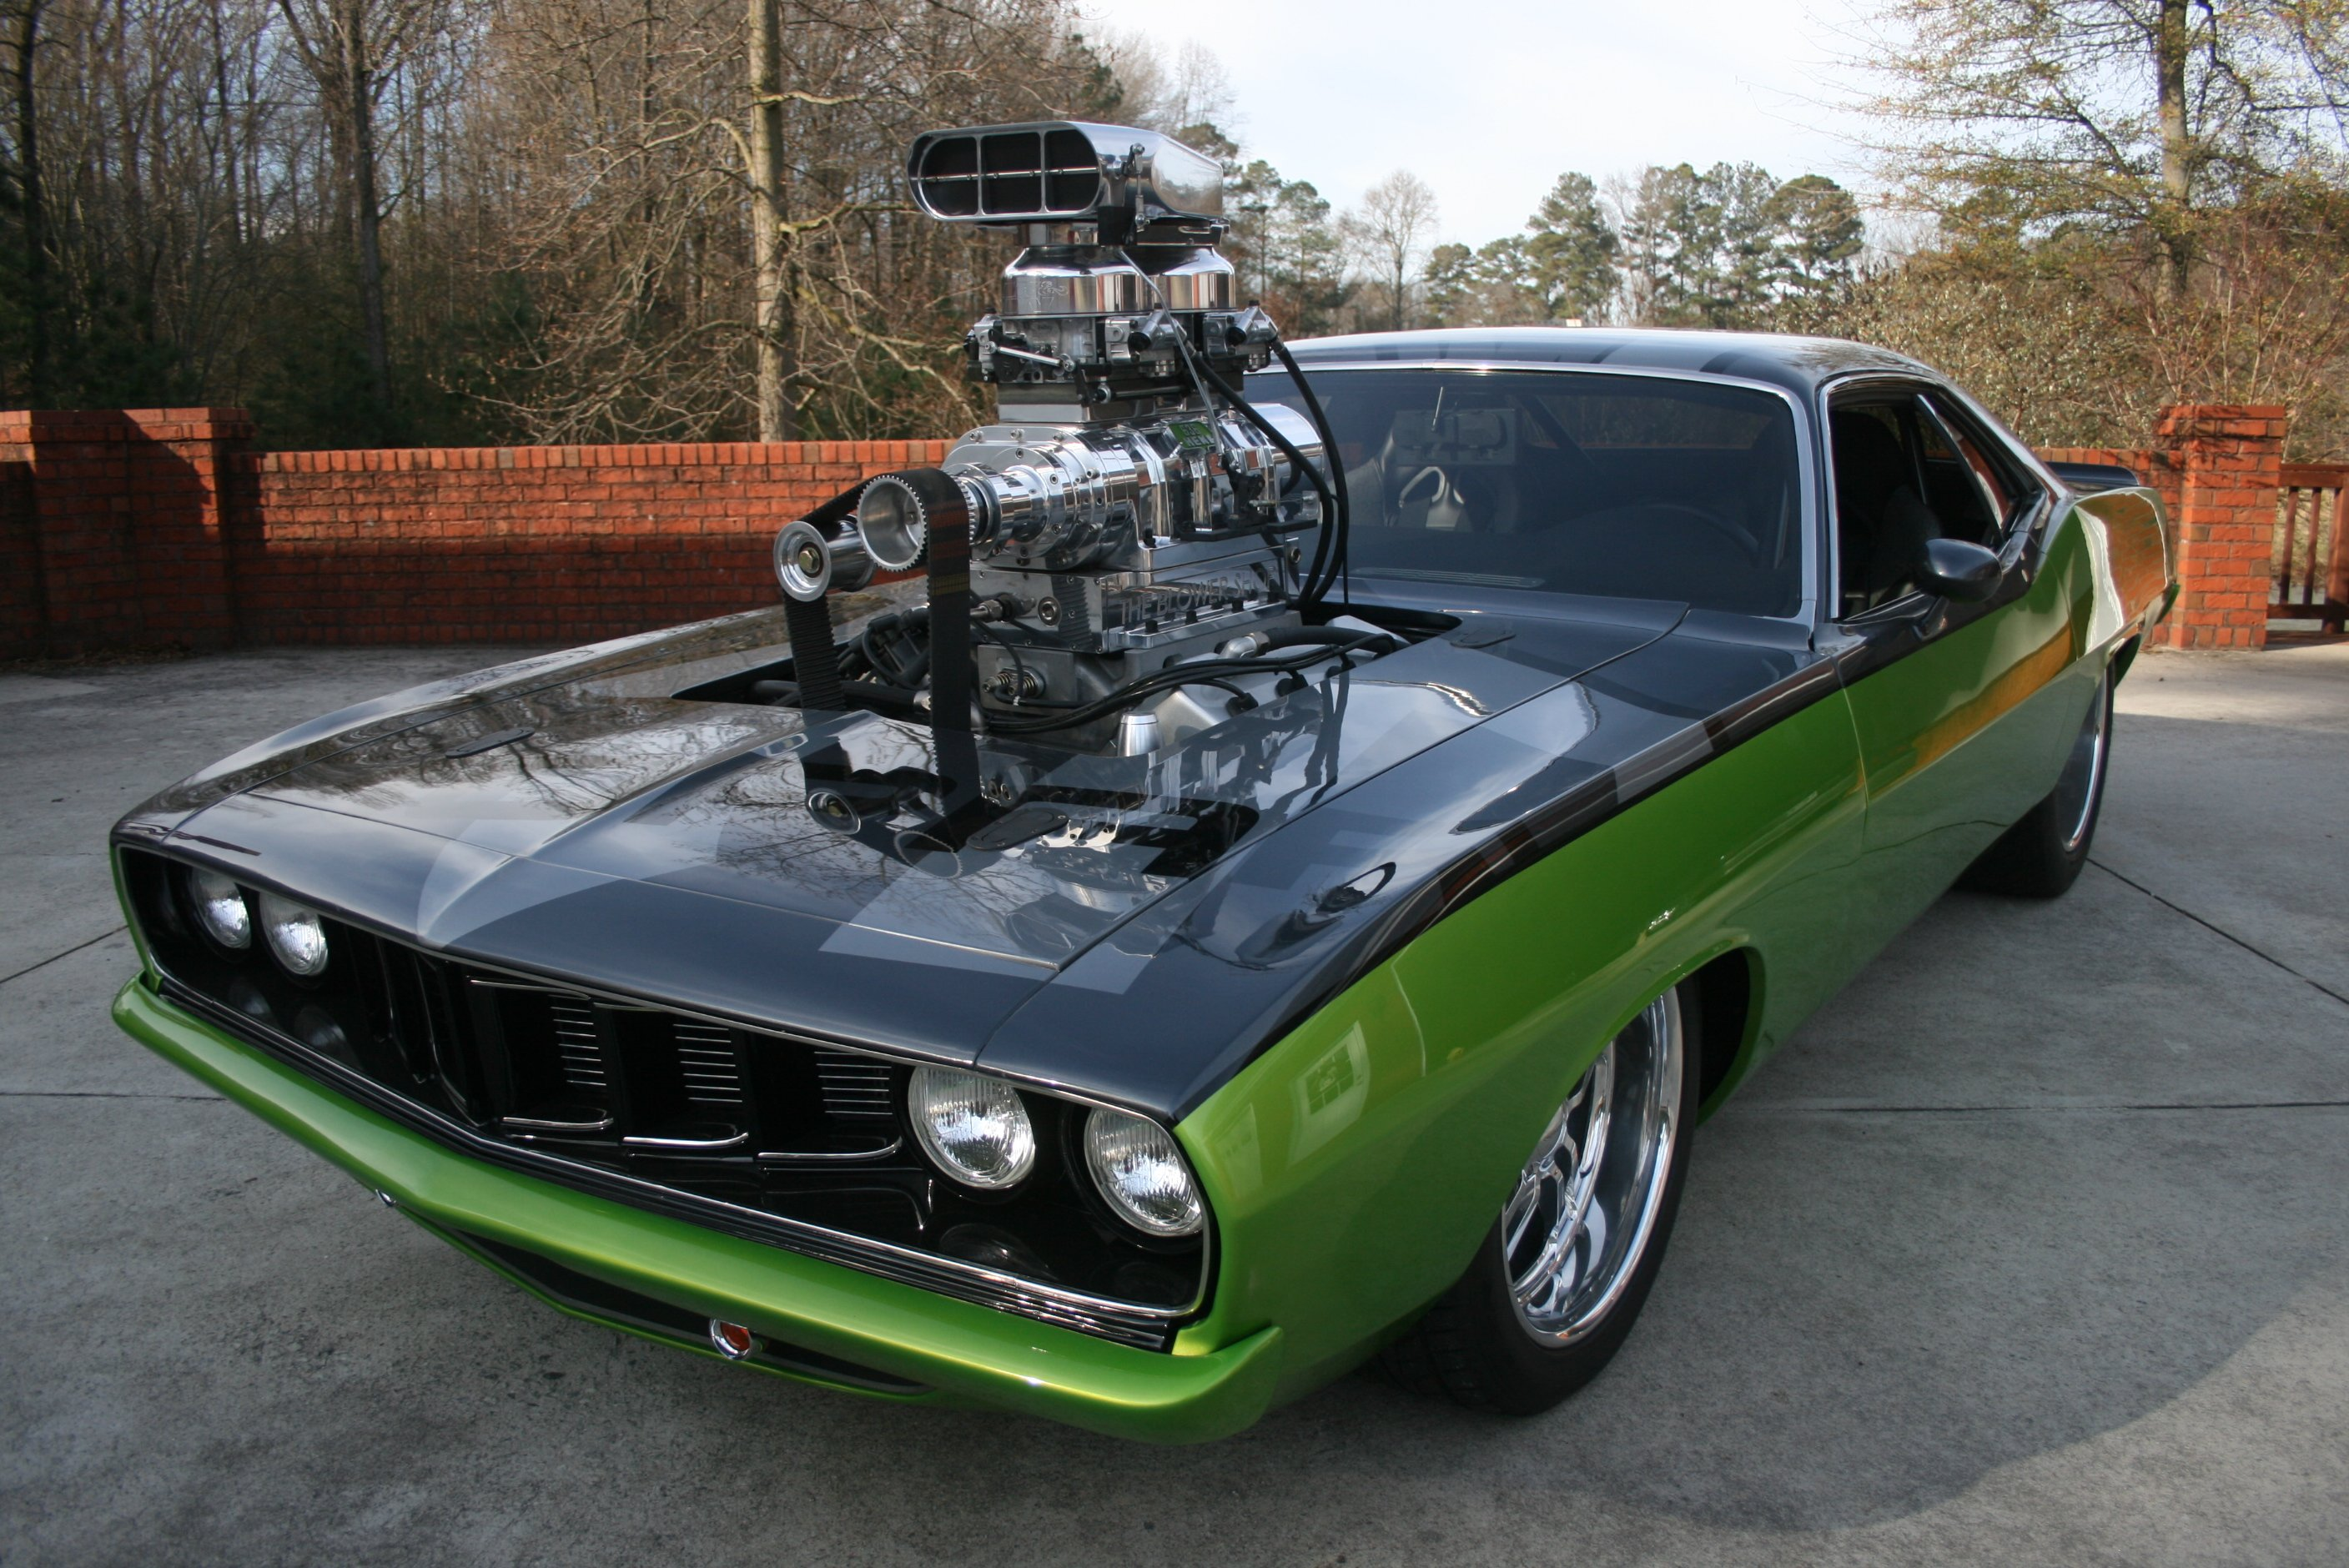 hemi muscle cars - photo #33